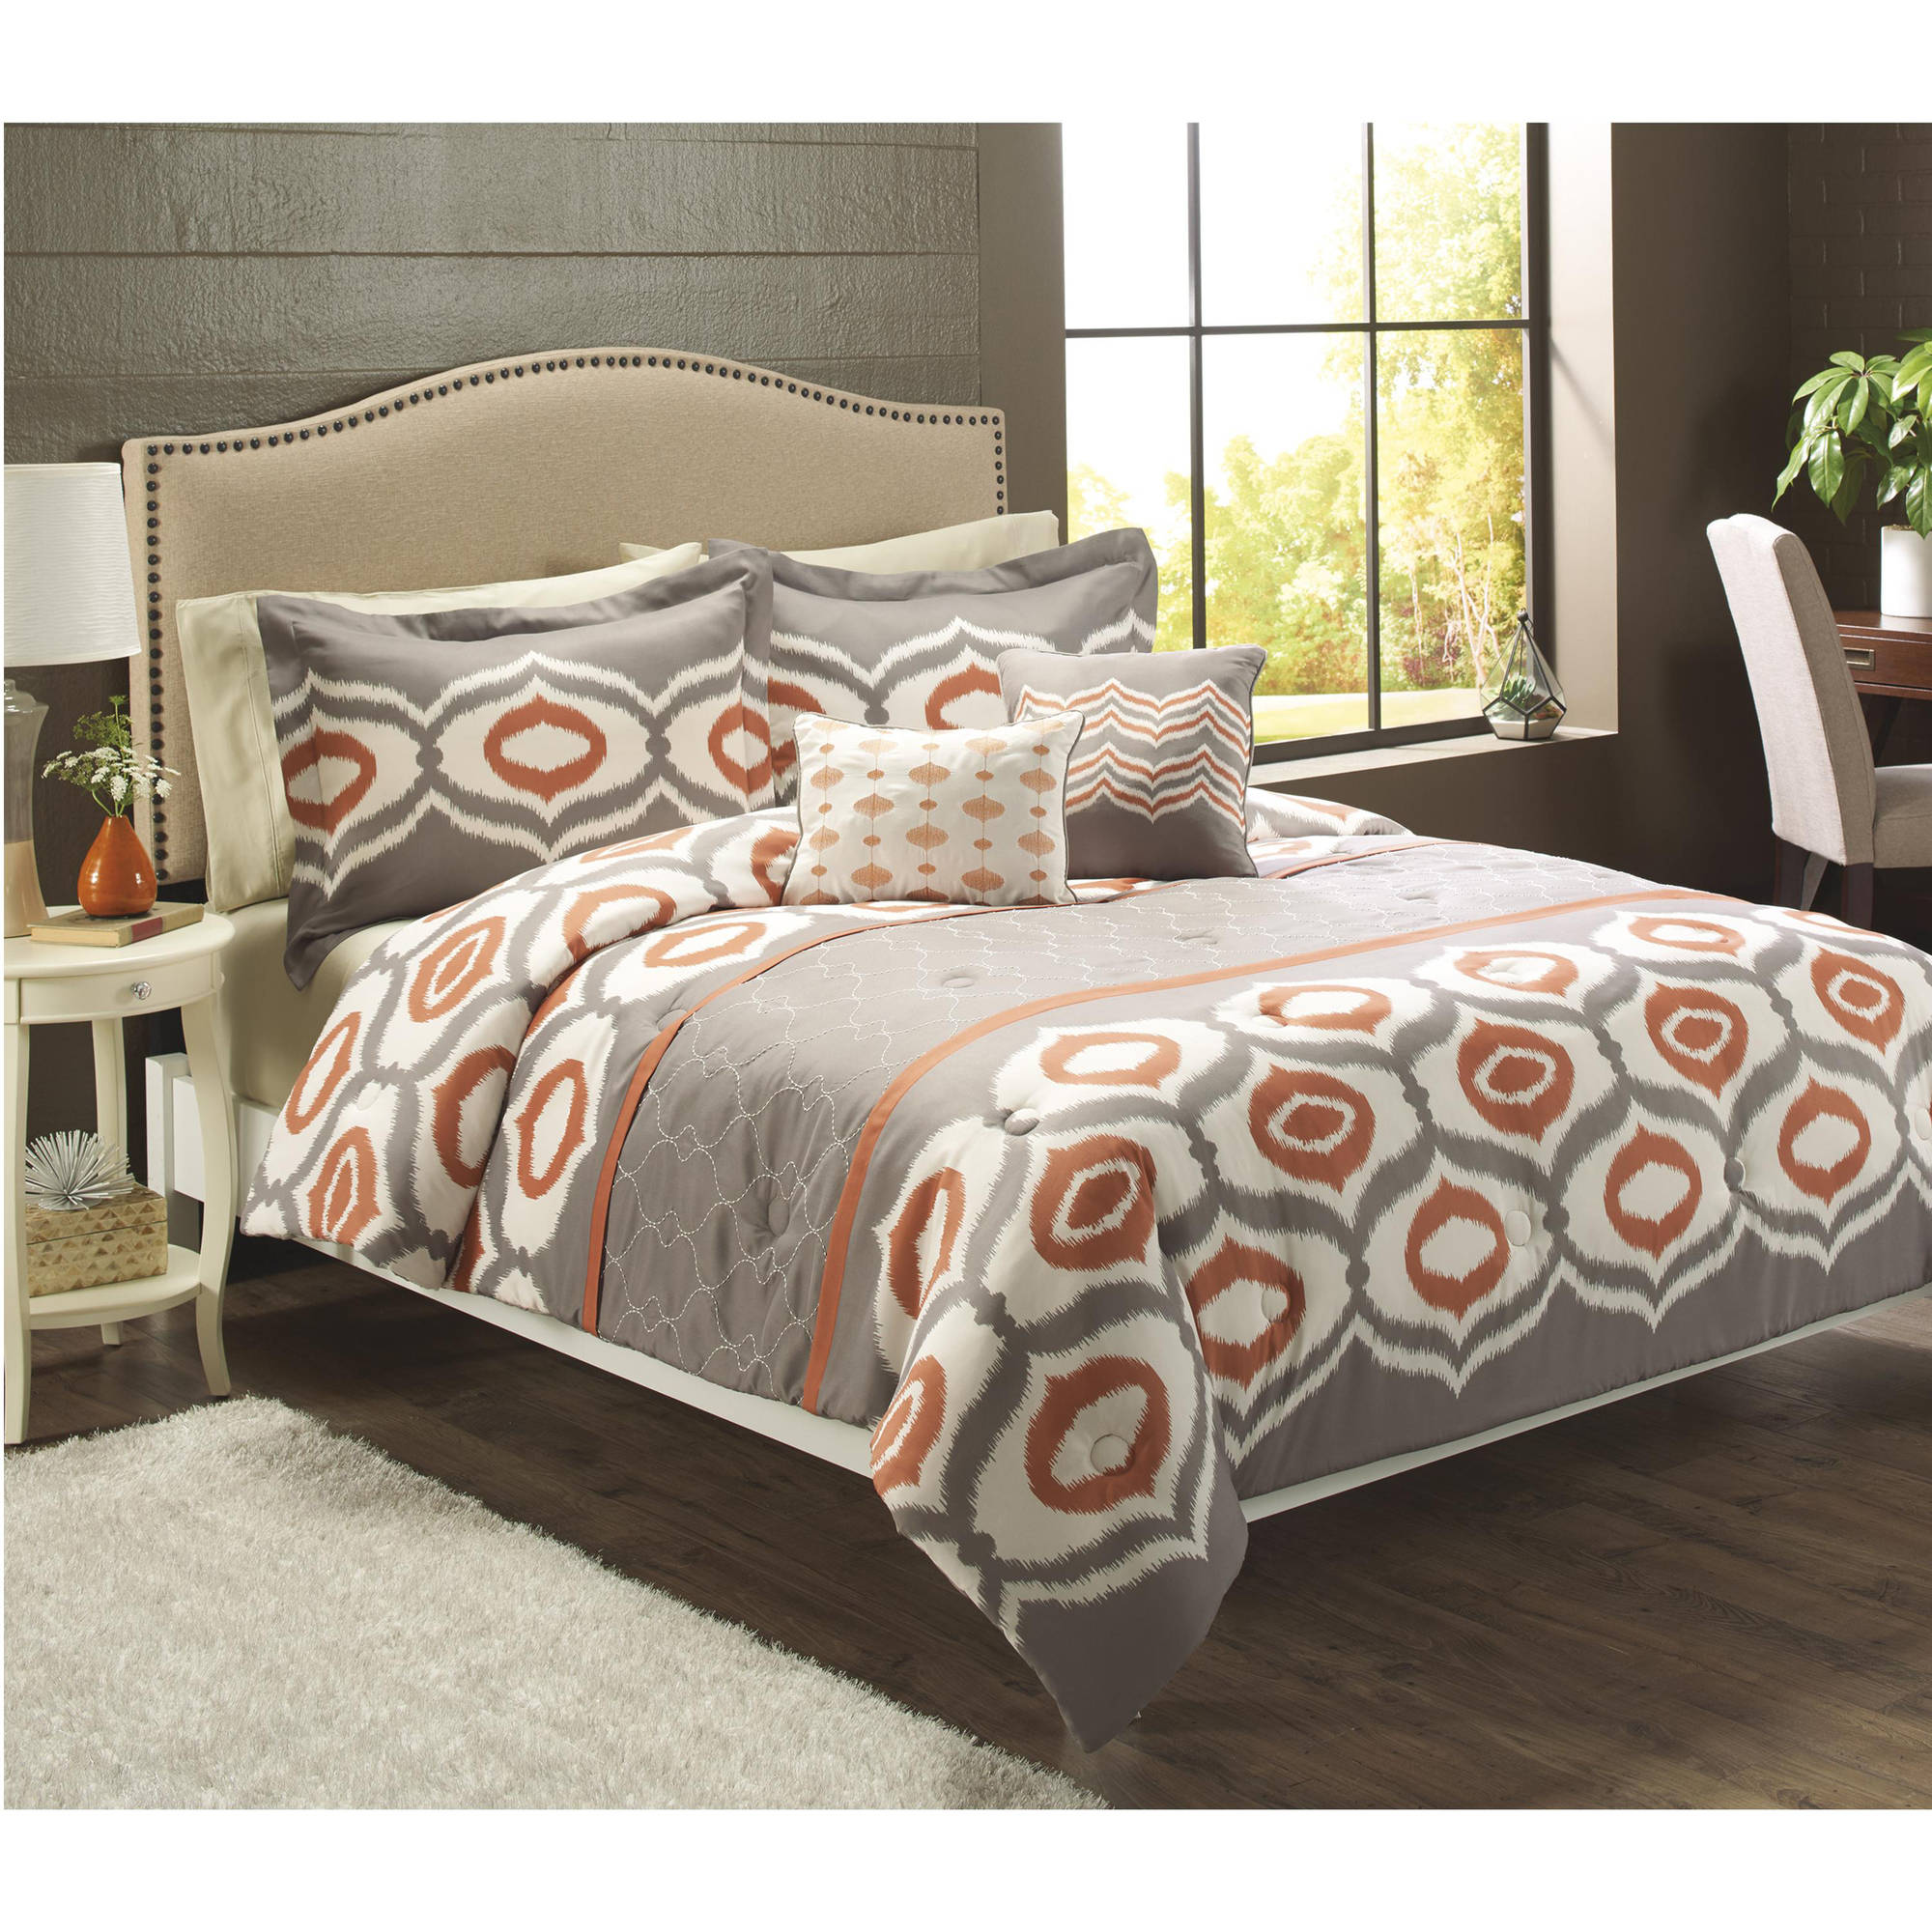 Better Homes And Gardens Ikat Trellis 5 Piece Bedding Set